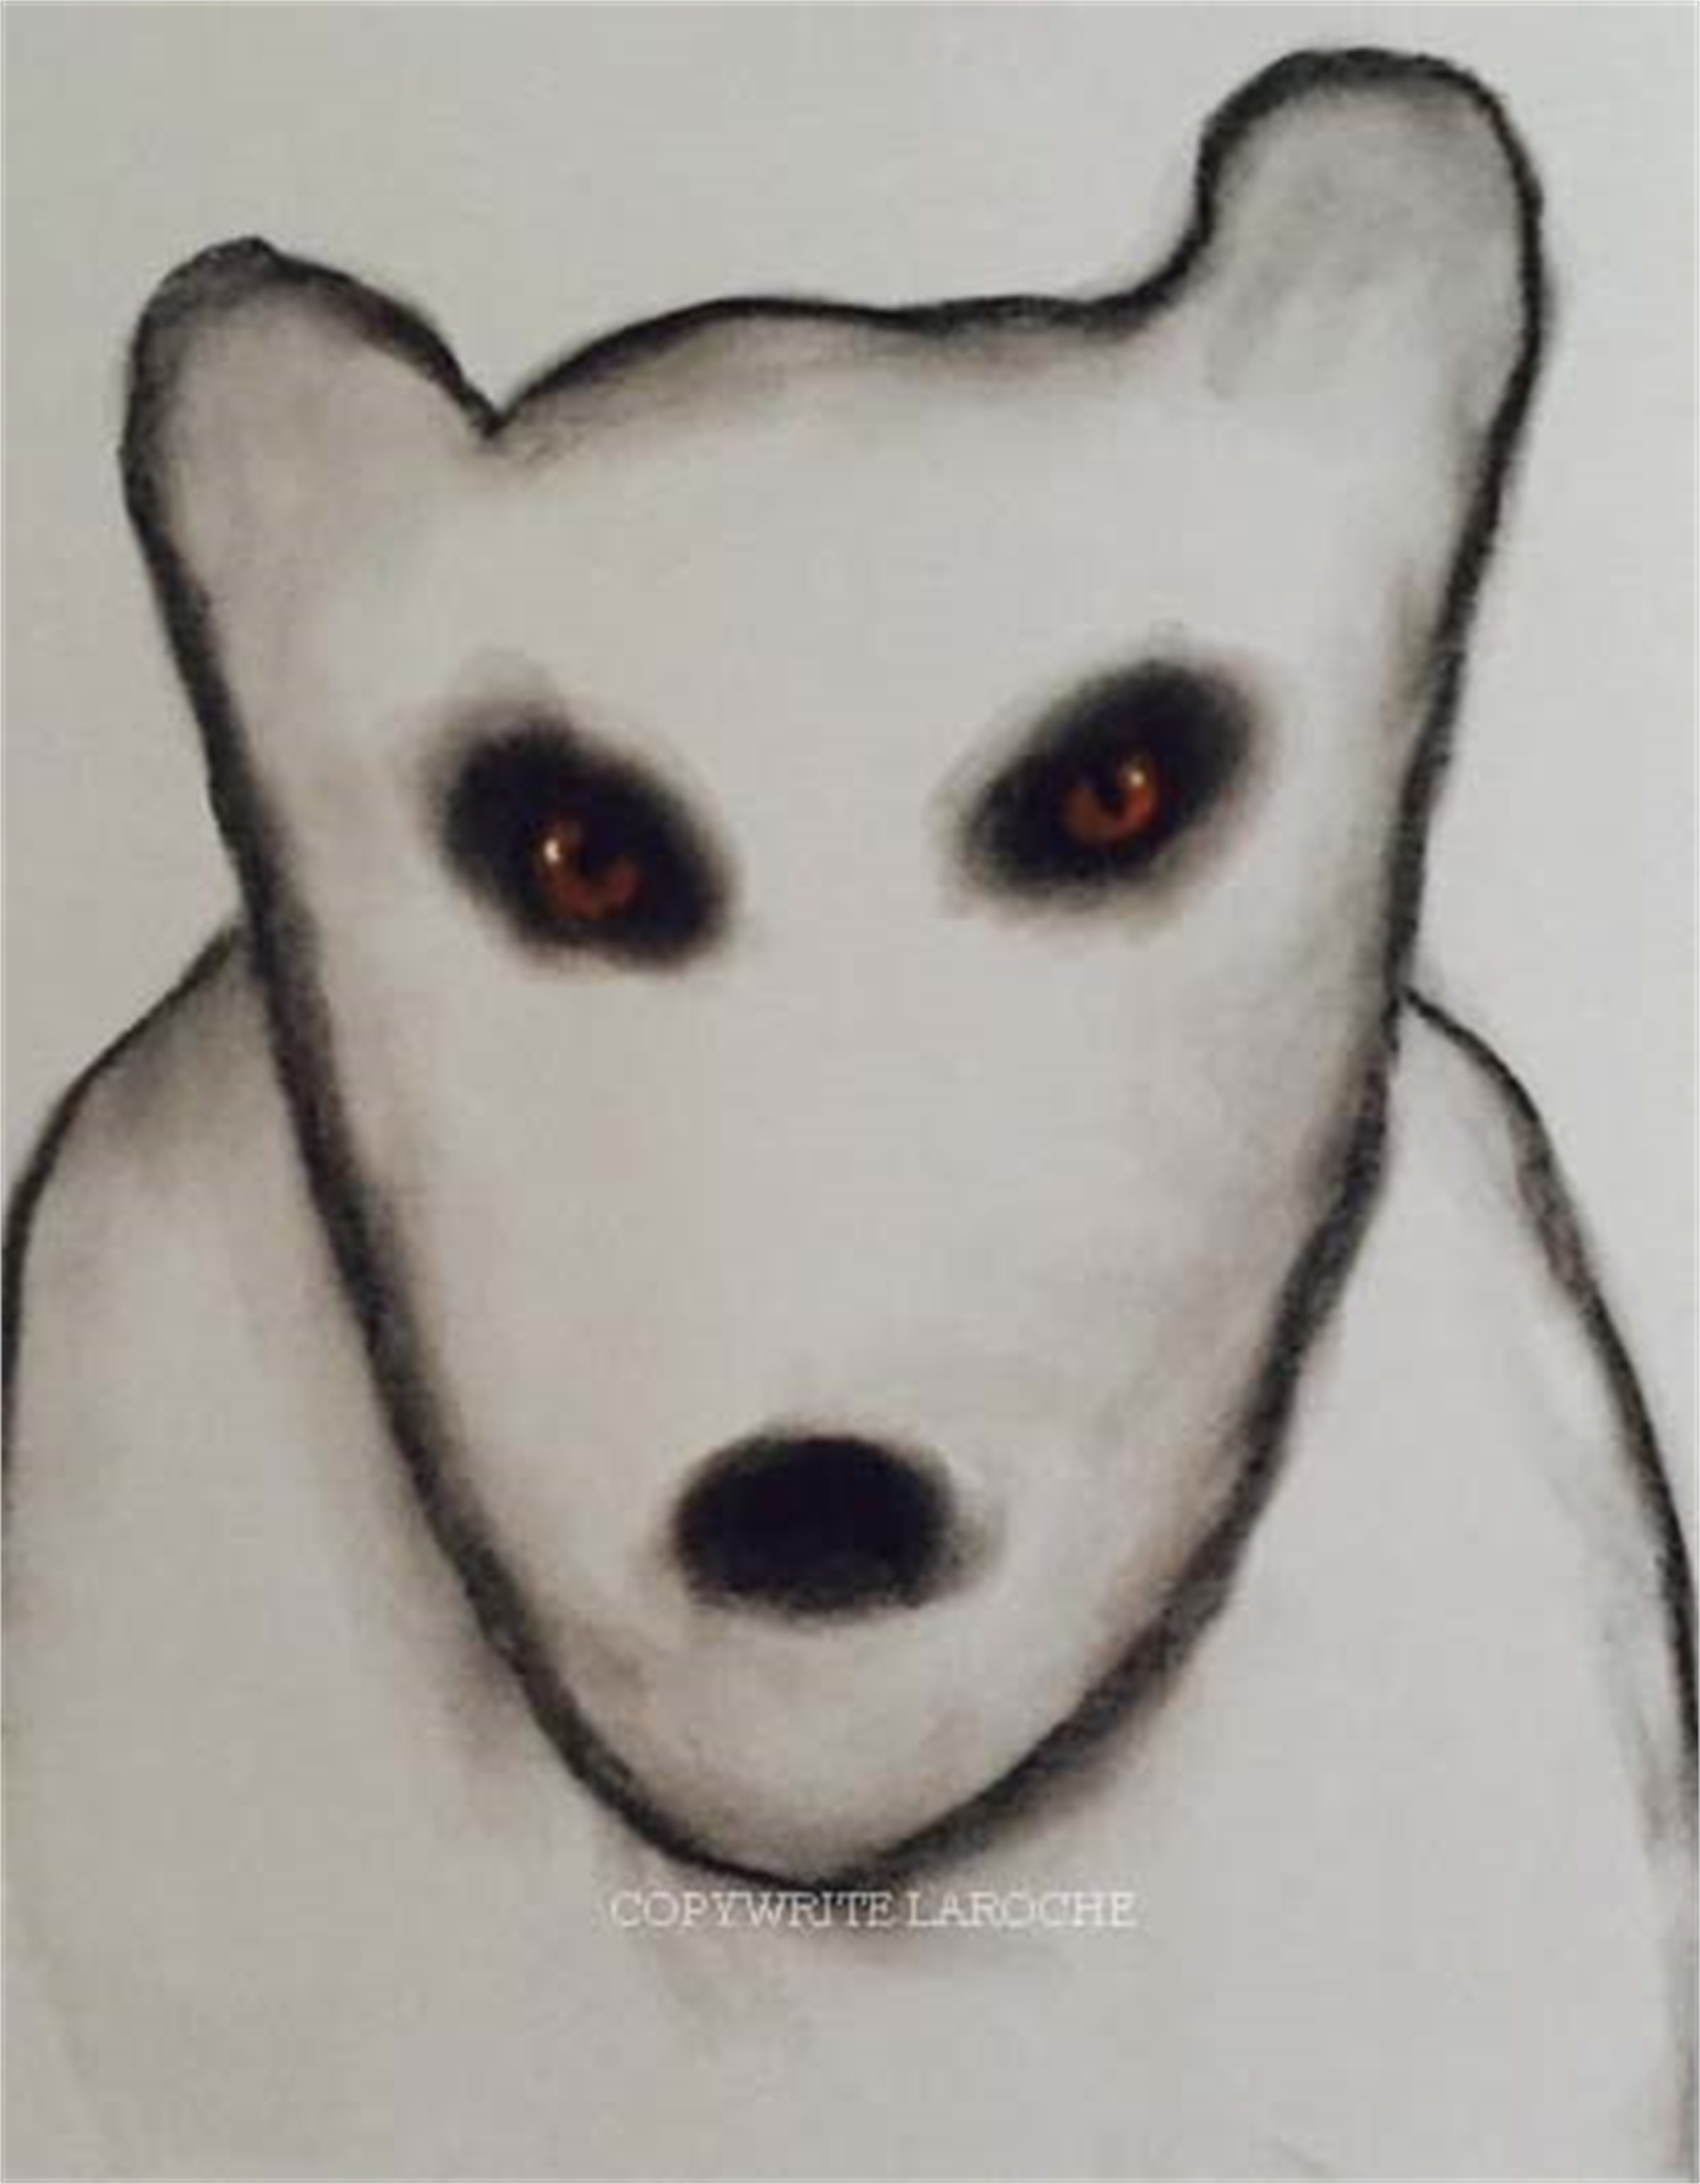 THE VISITORS/BEAR VI by Carole LaRoche